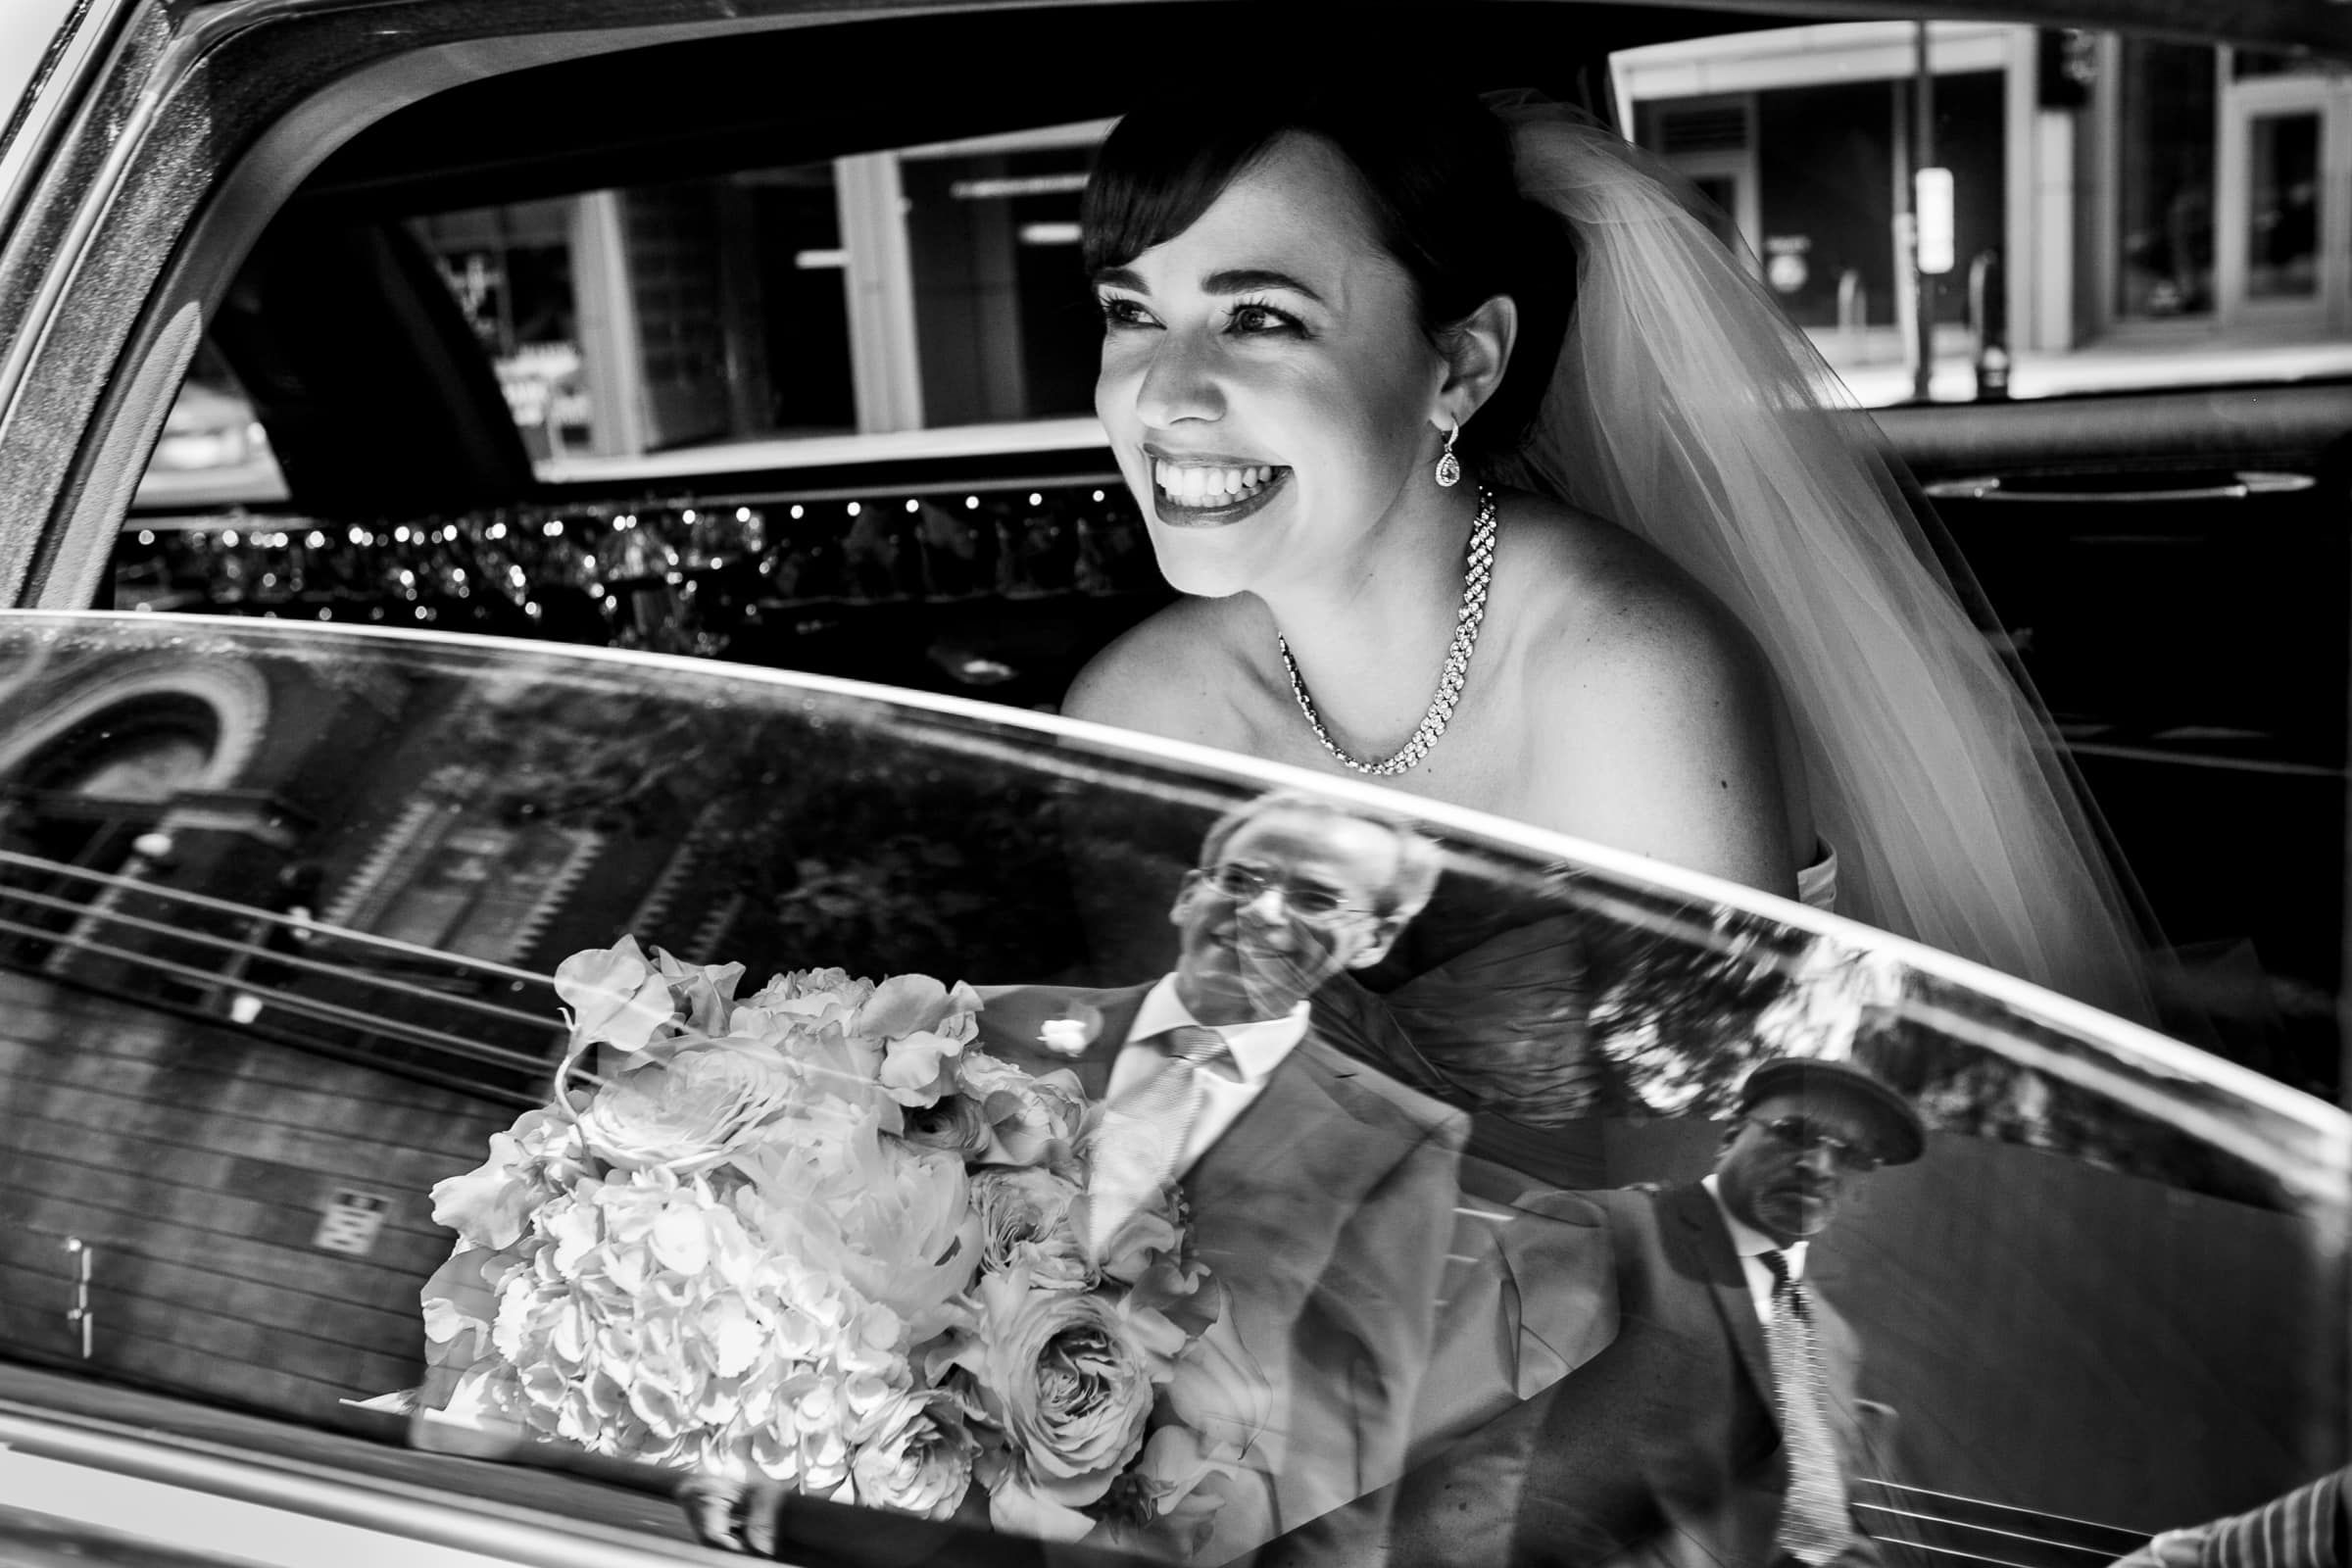 Reflection of a father in a limousine window  seeing his emotional daughter as a bride heading into her Waverley Country Club wedding